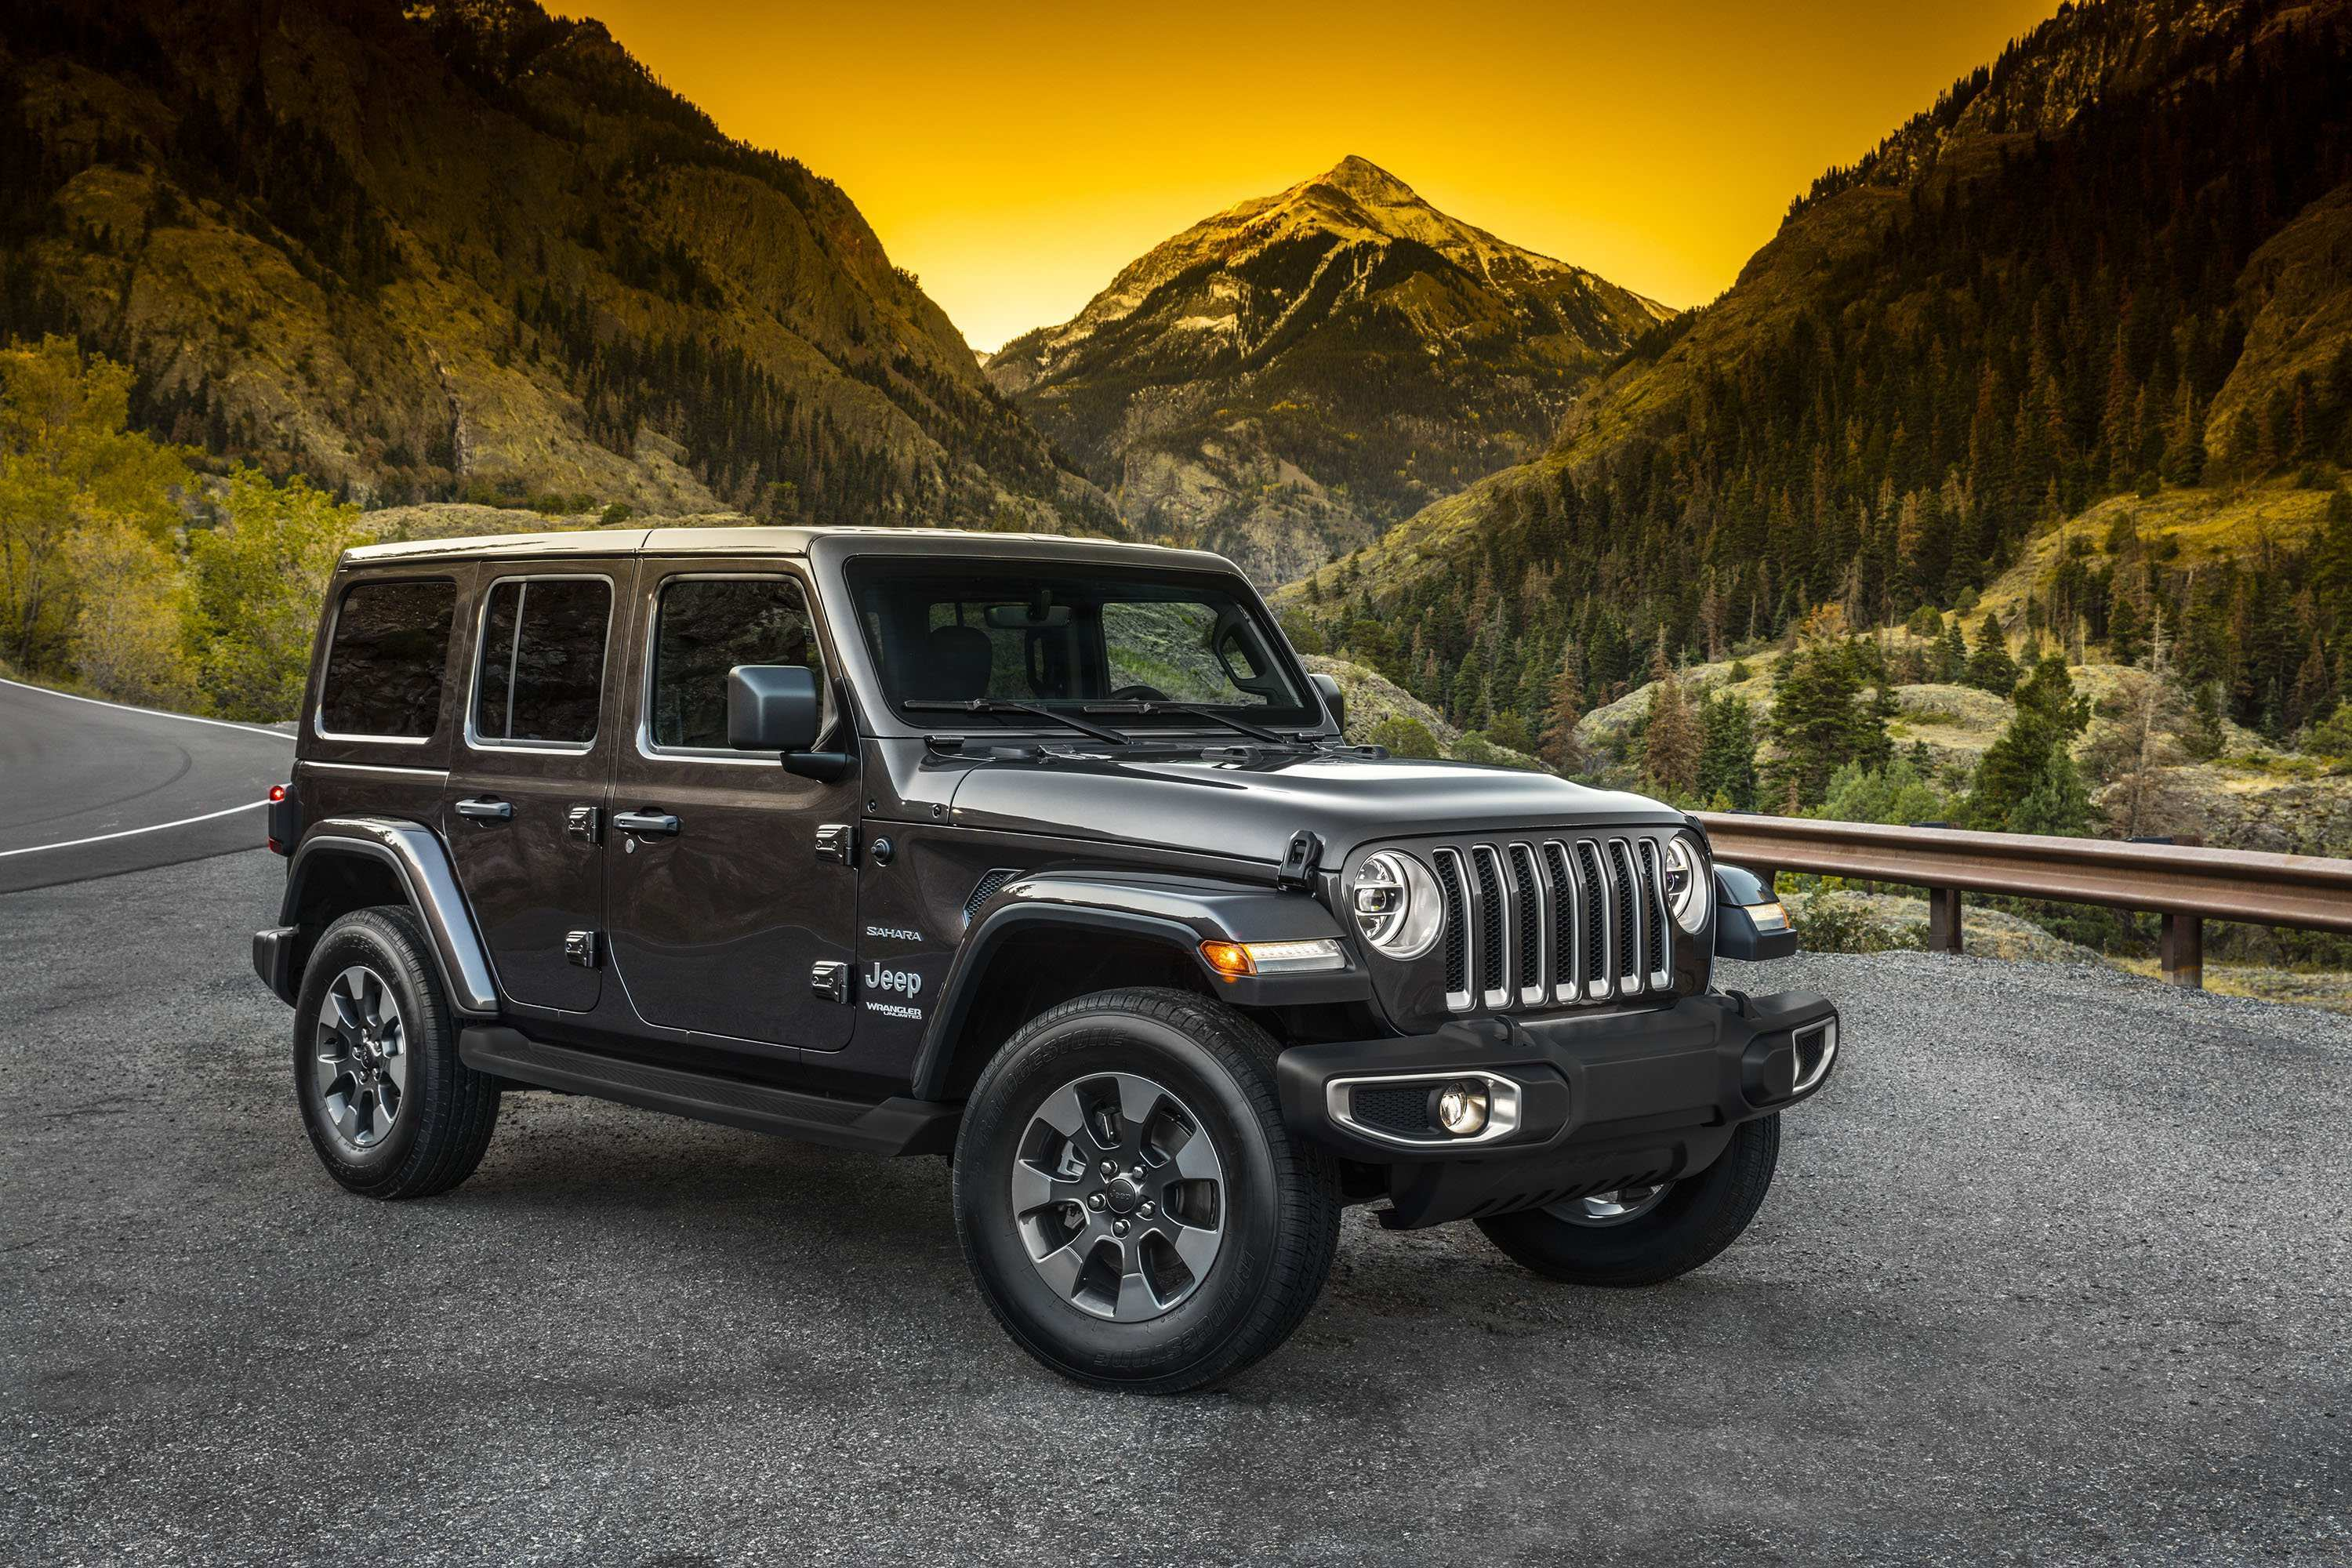 51 The Jeep In 2020 Picture for Jeep In 2020